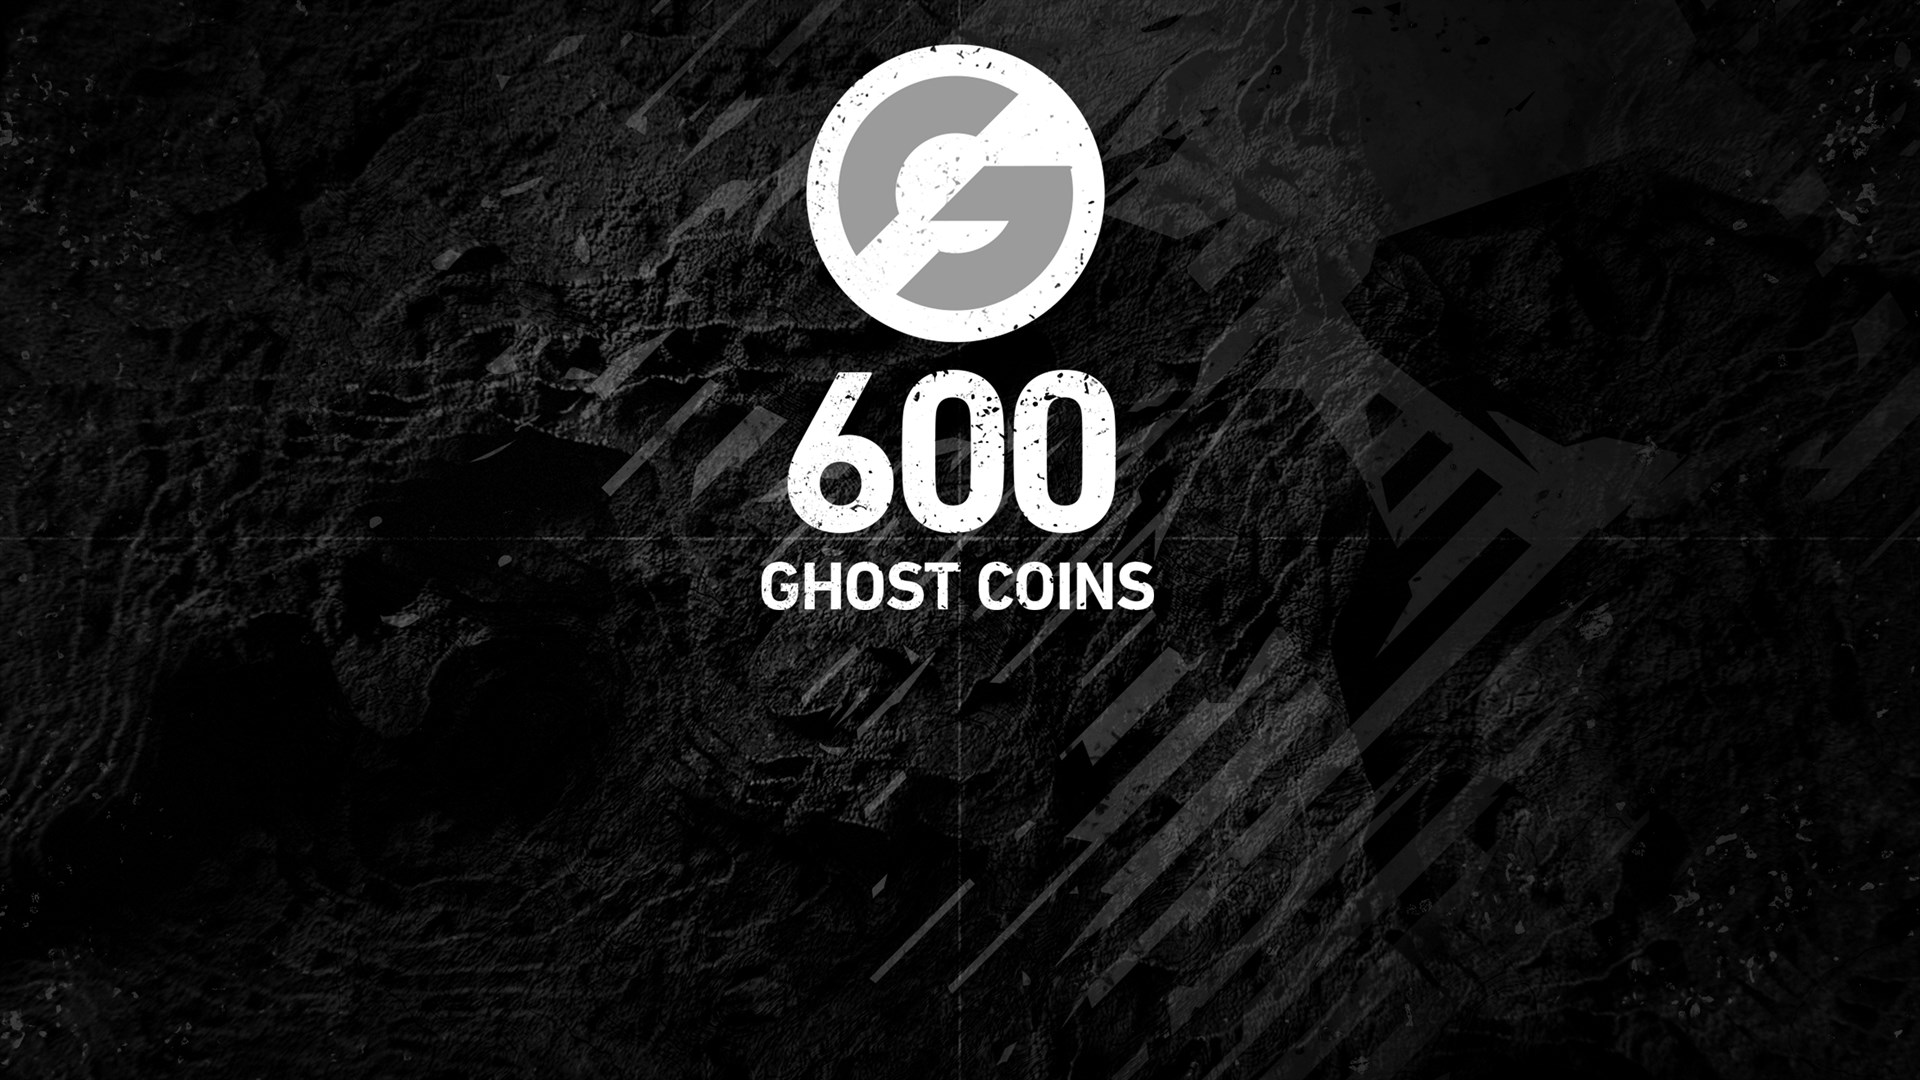 Ghost Recon Breakpoint: 600 Ghost Coins